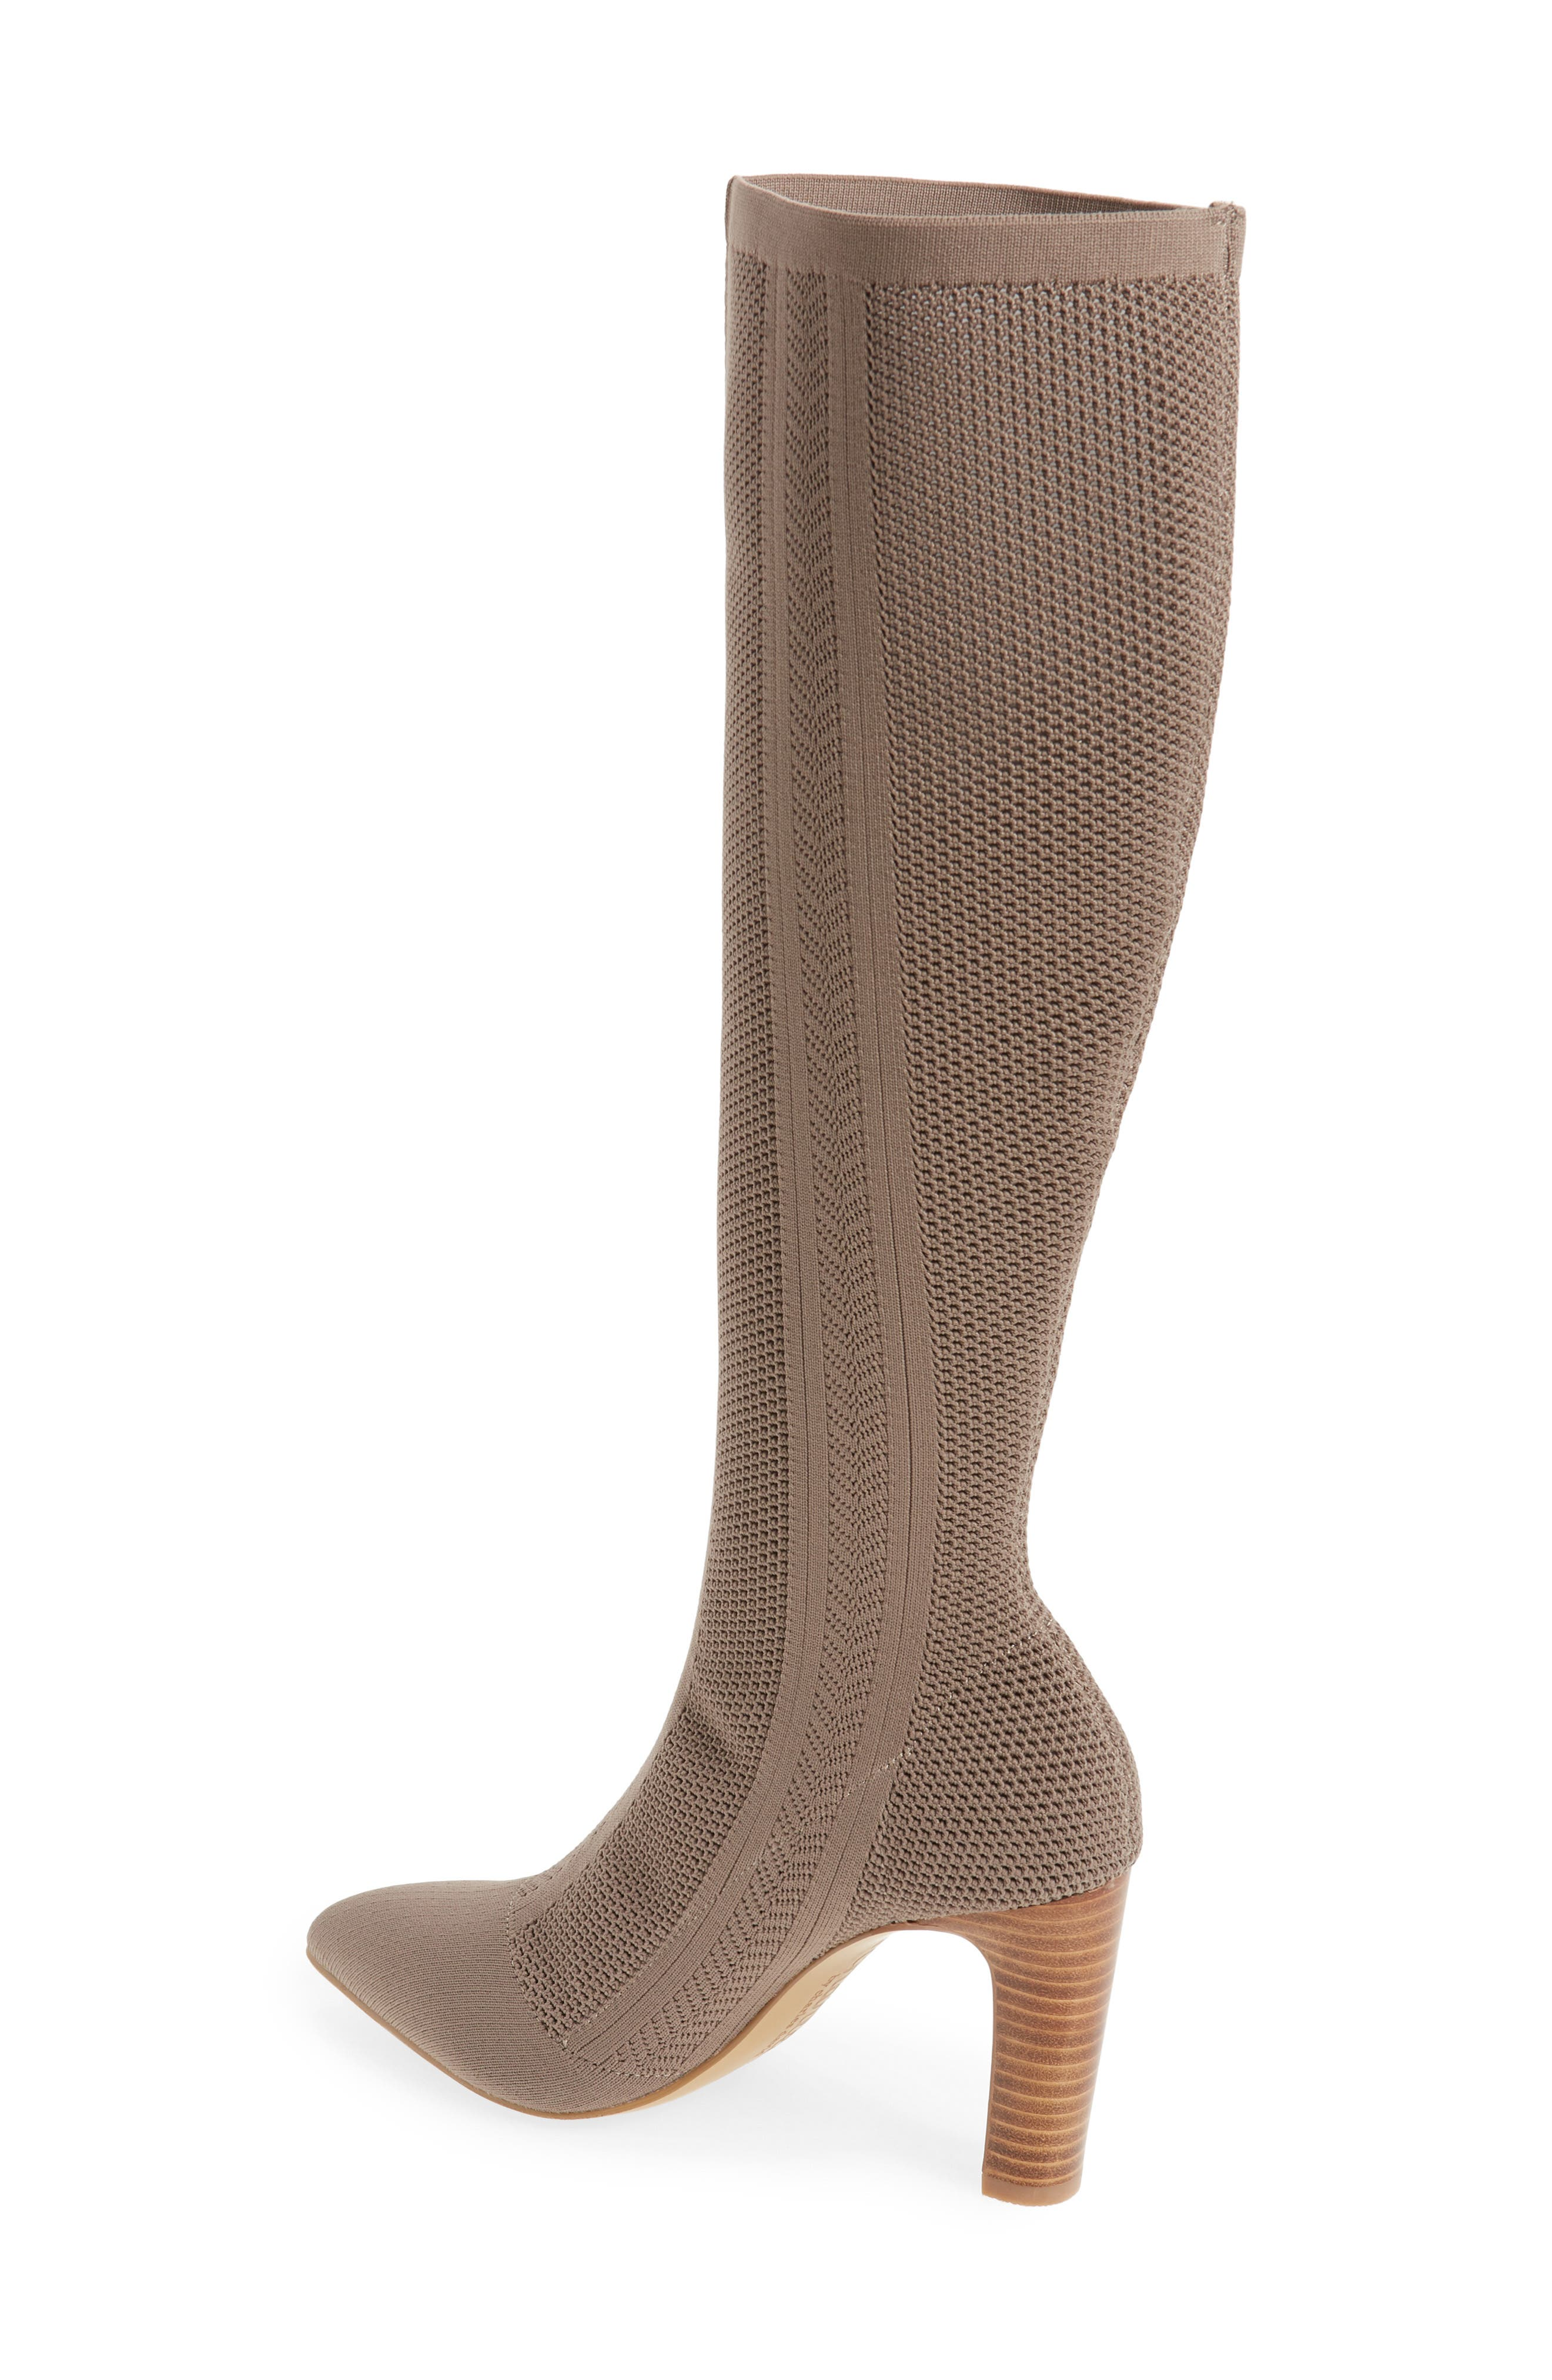 Davis Knit Boot,                             Alternate thumbnail 2, color,                             TAUPE FABRIC